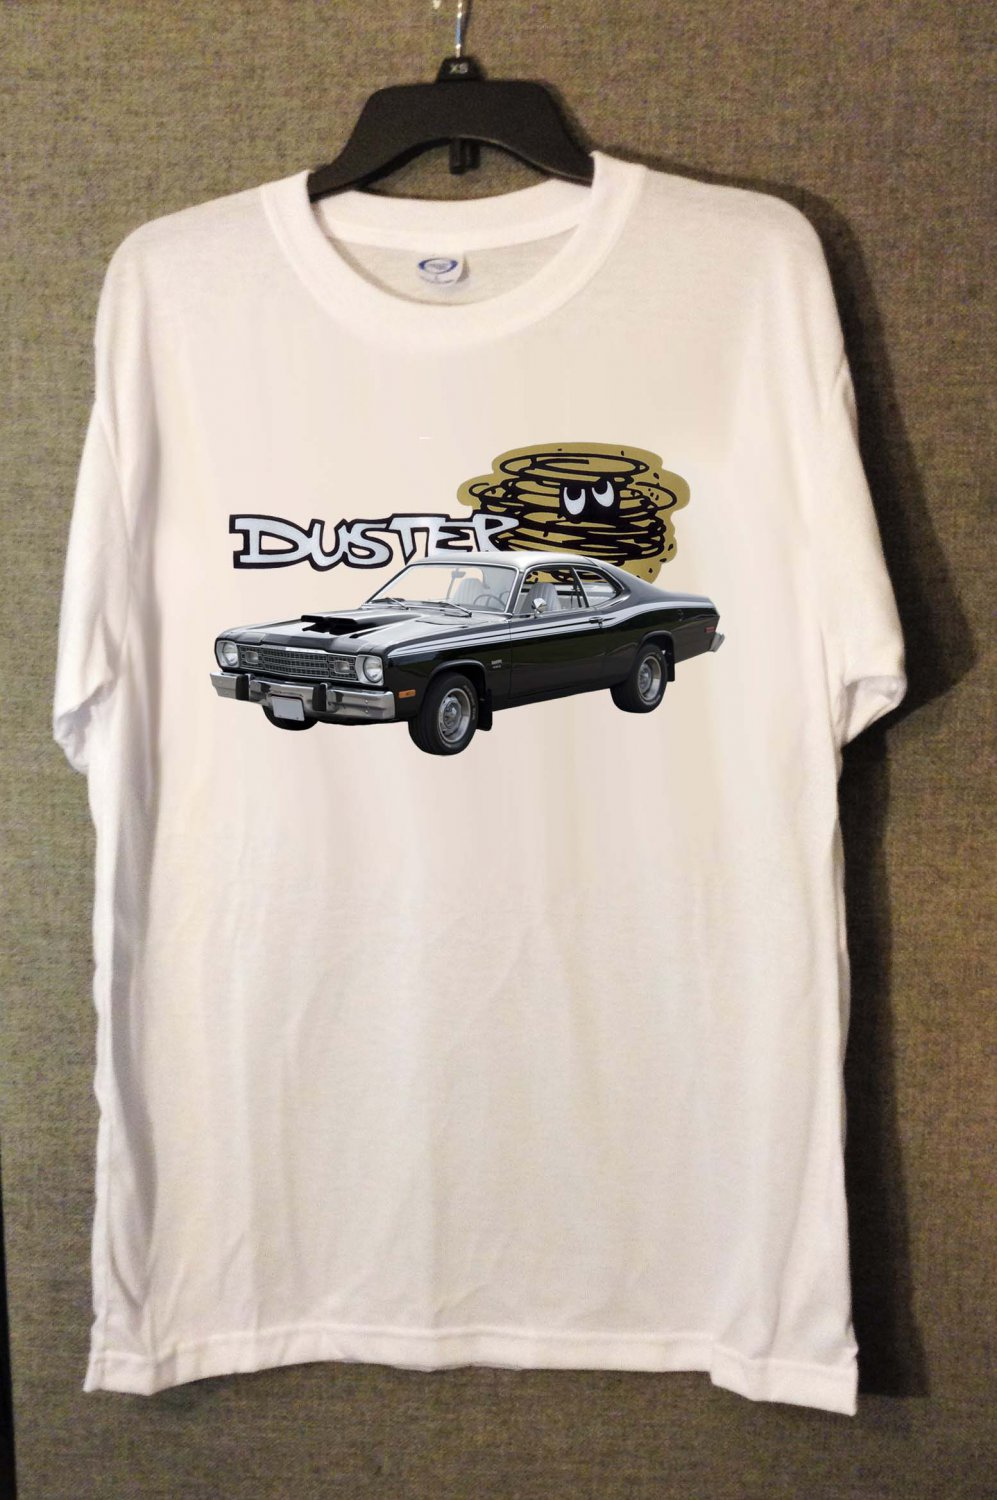 New 1974  Plymouth Duster T-shirt  (Medium)